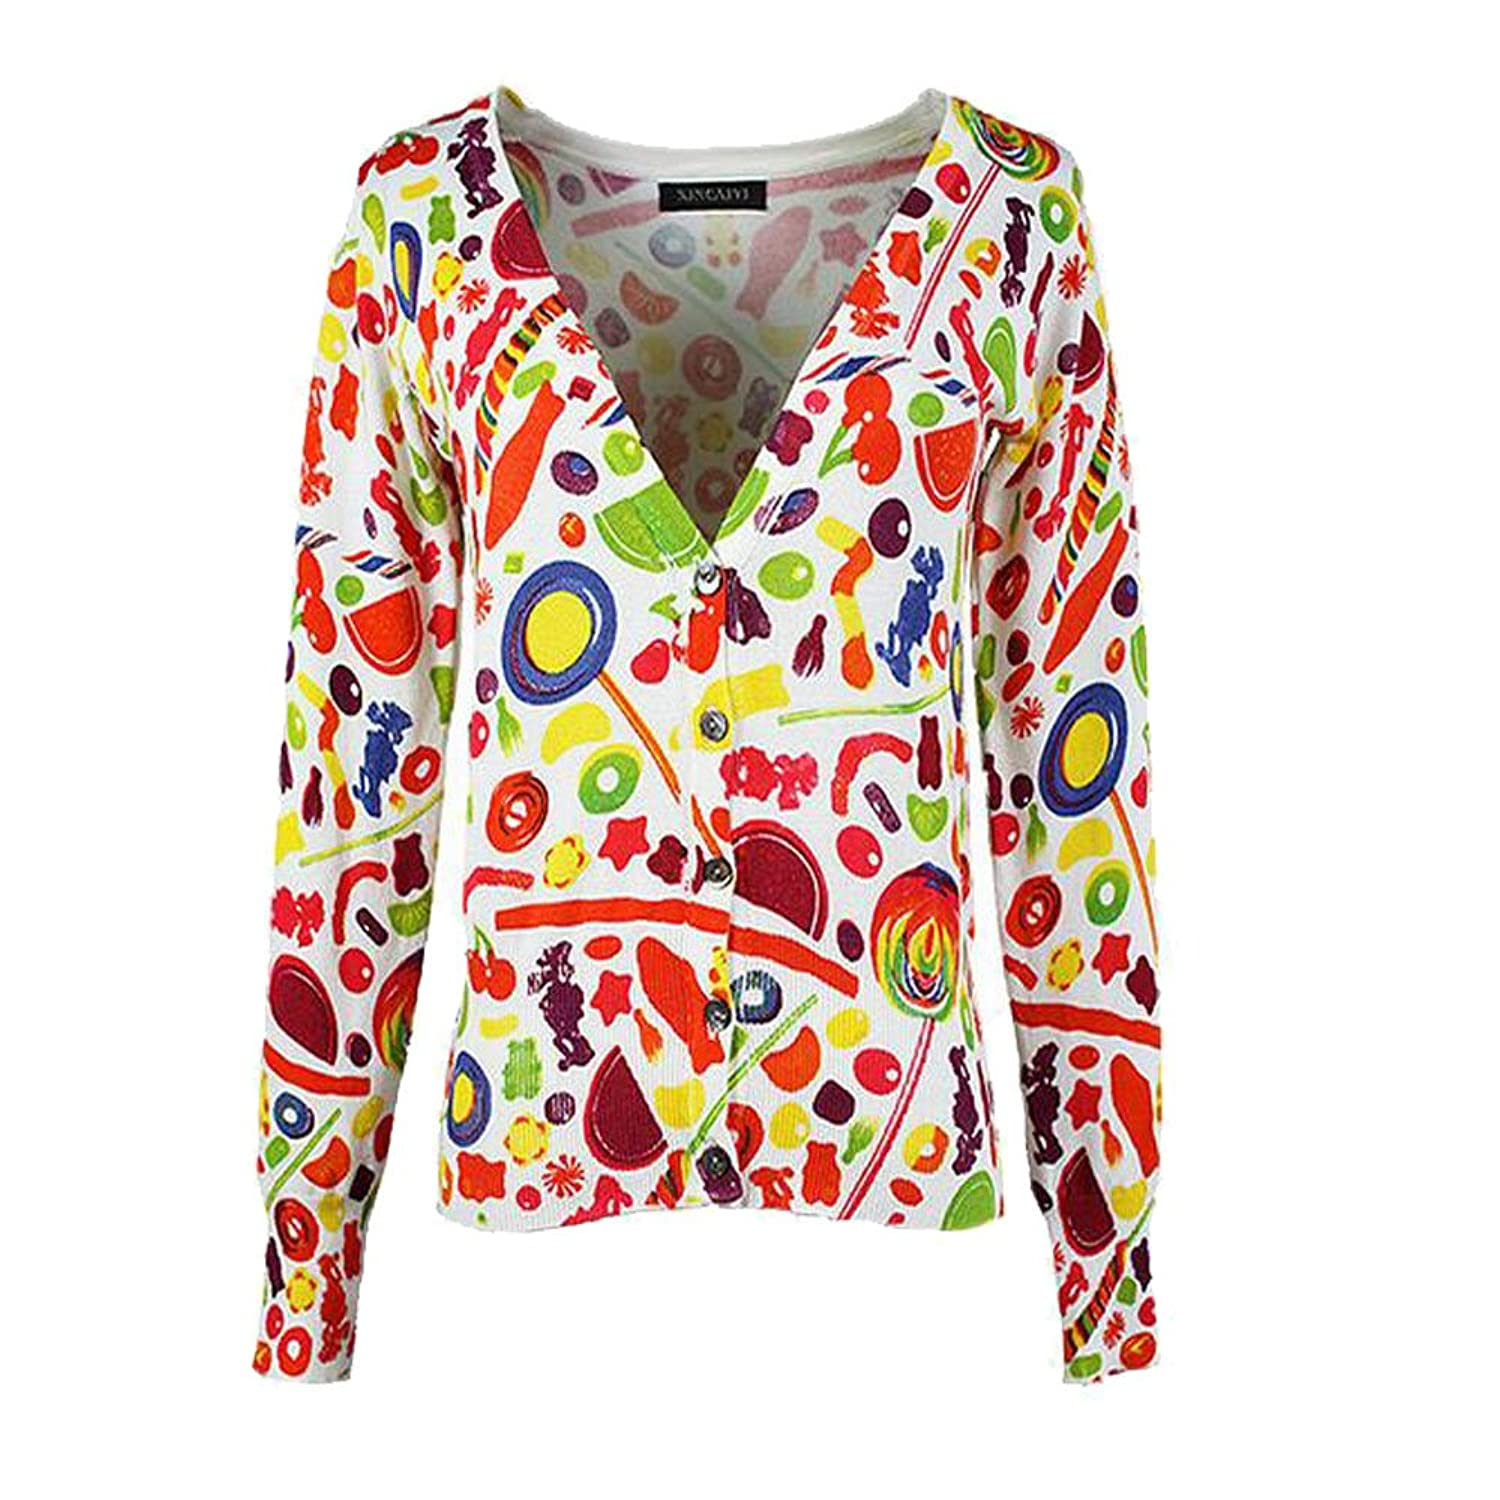 Women's petite fruit printing V-neck short cardigan sweater